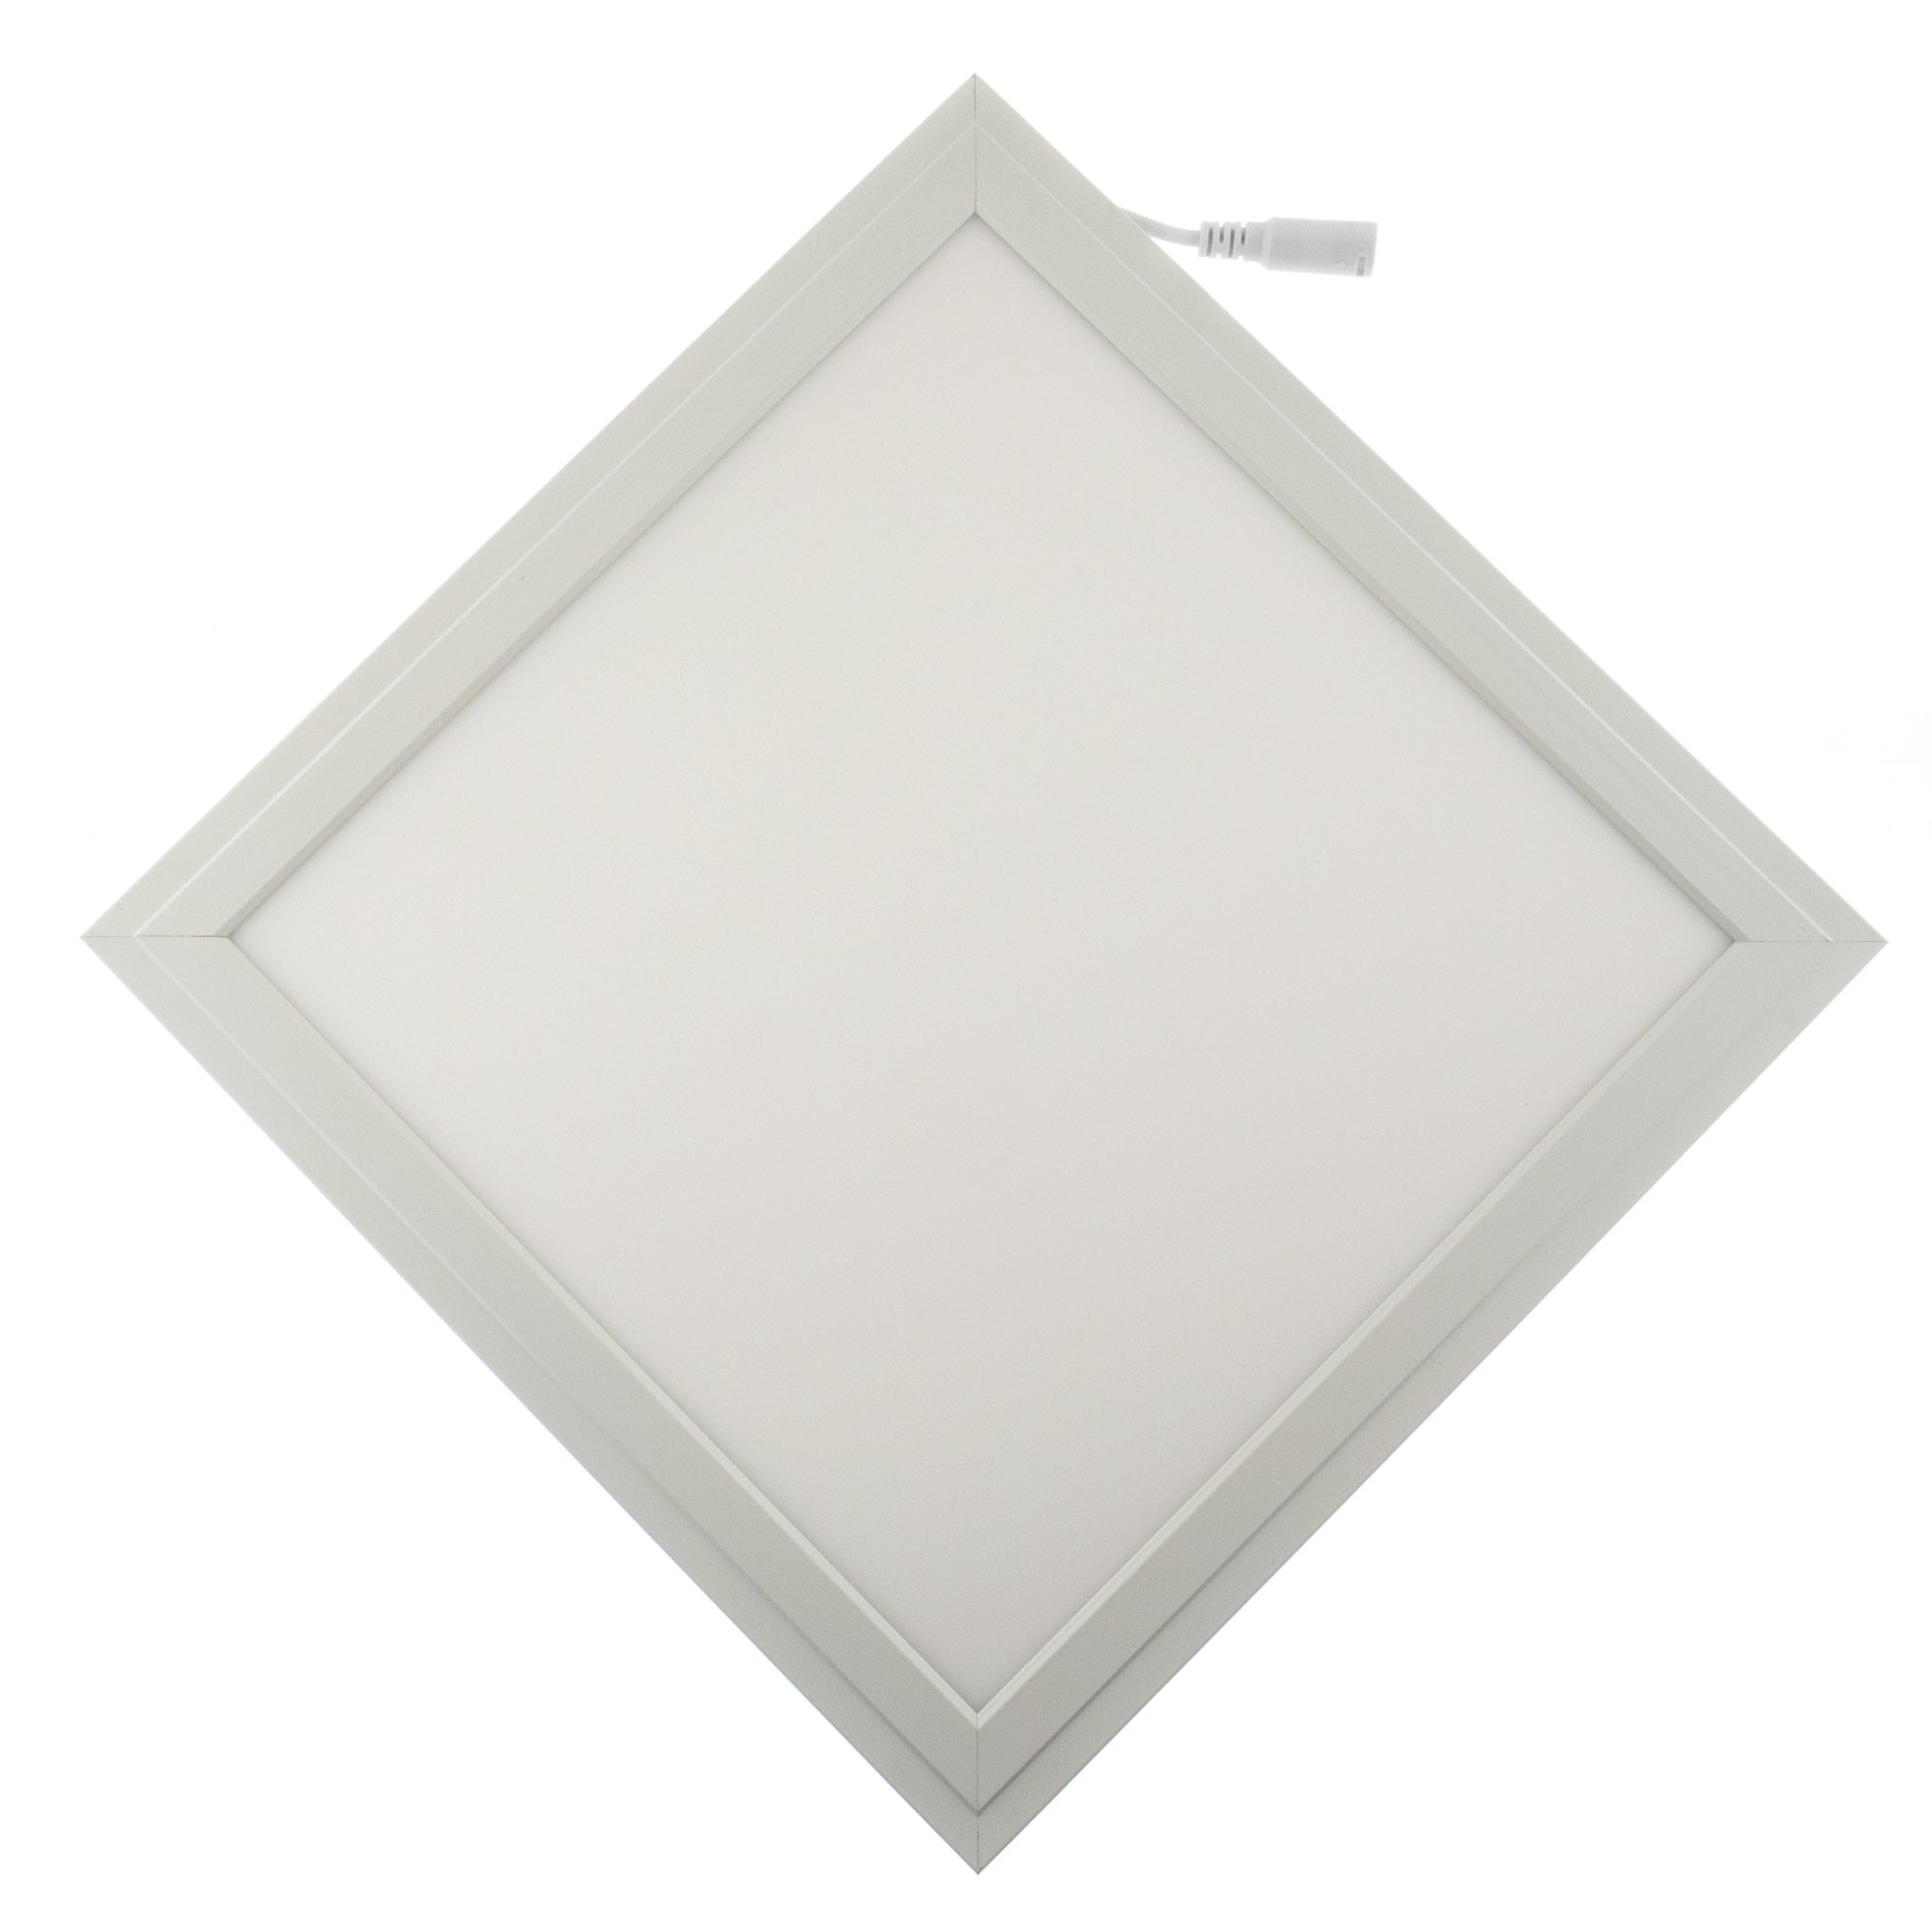 LED-Panel 30x30 18W, cold white